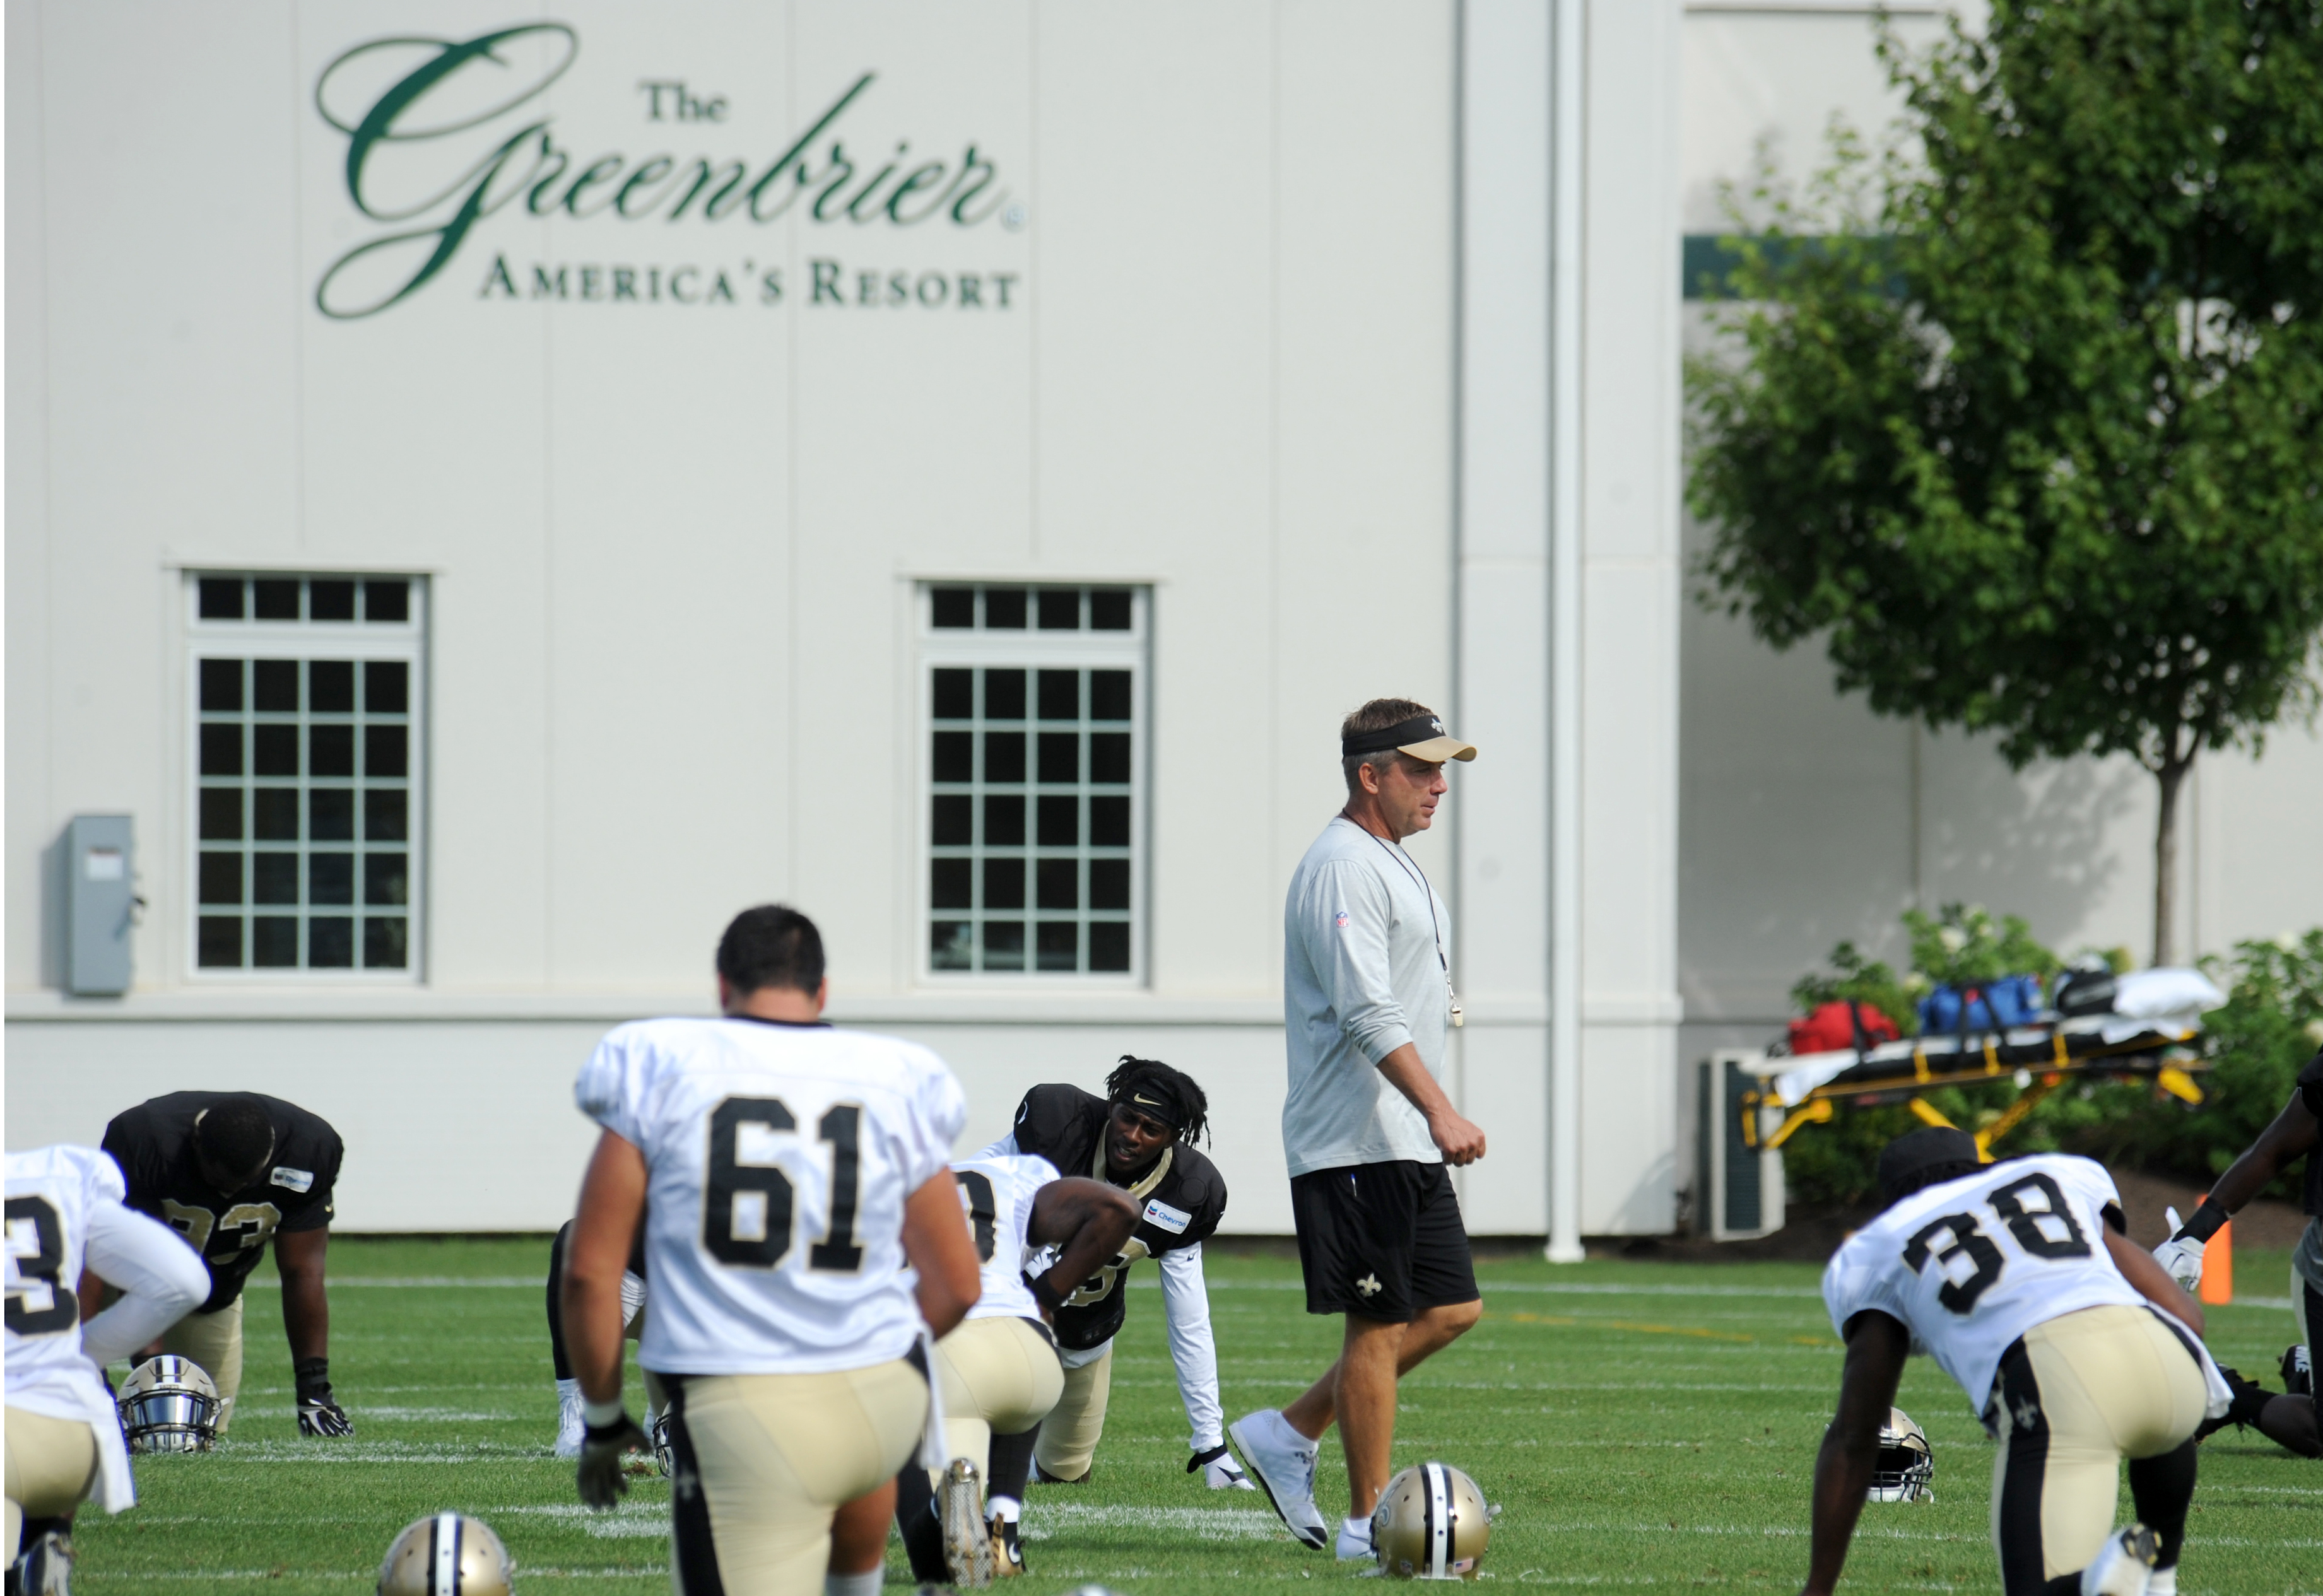 FILE - In this Aug. 15, 2016, file photo, New Orleans Saints head coach Sean Payton walks among the players during the NFL football teams training camp at the Greenbrier Resort in White Sulphur Springs, W. Va. The Saints' three-year deal to hold the bulk